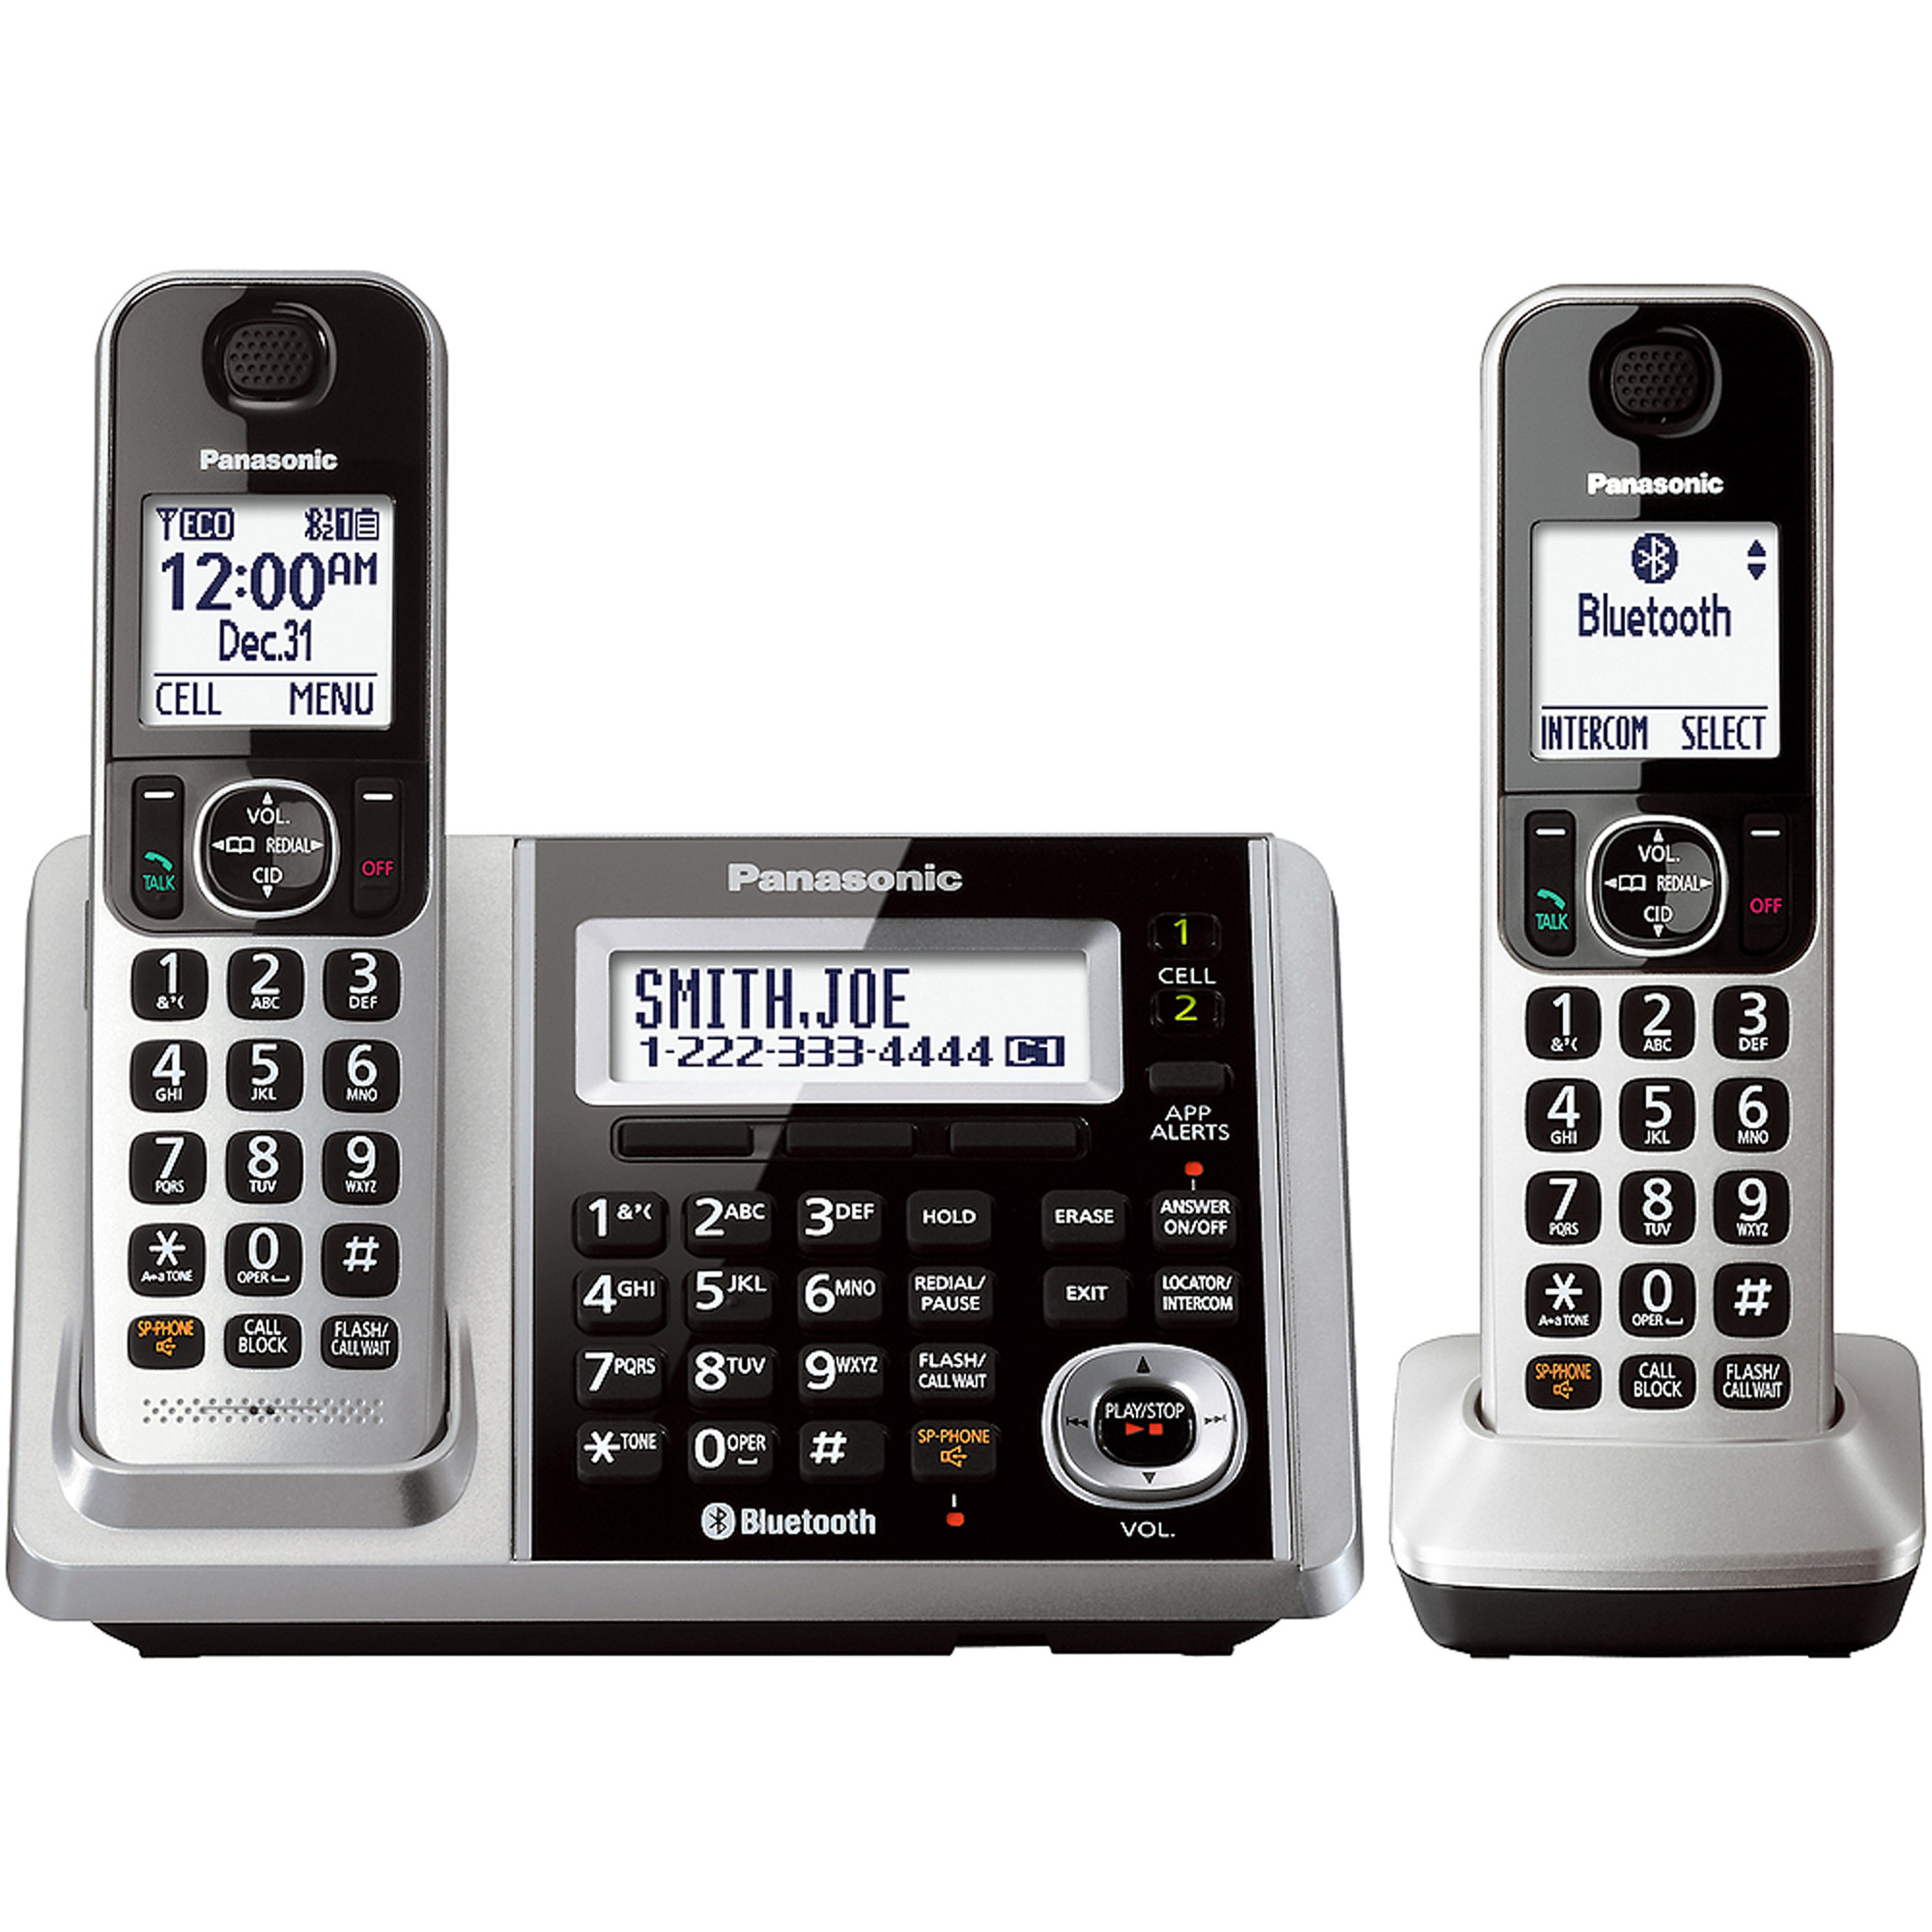 Panasonic Link2Cell Bluetooth Cordless Phone and Answering Machine with 2 Handsets